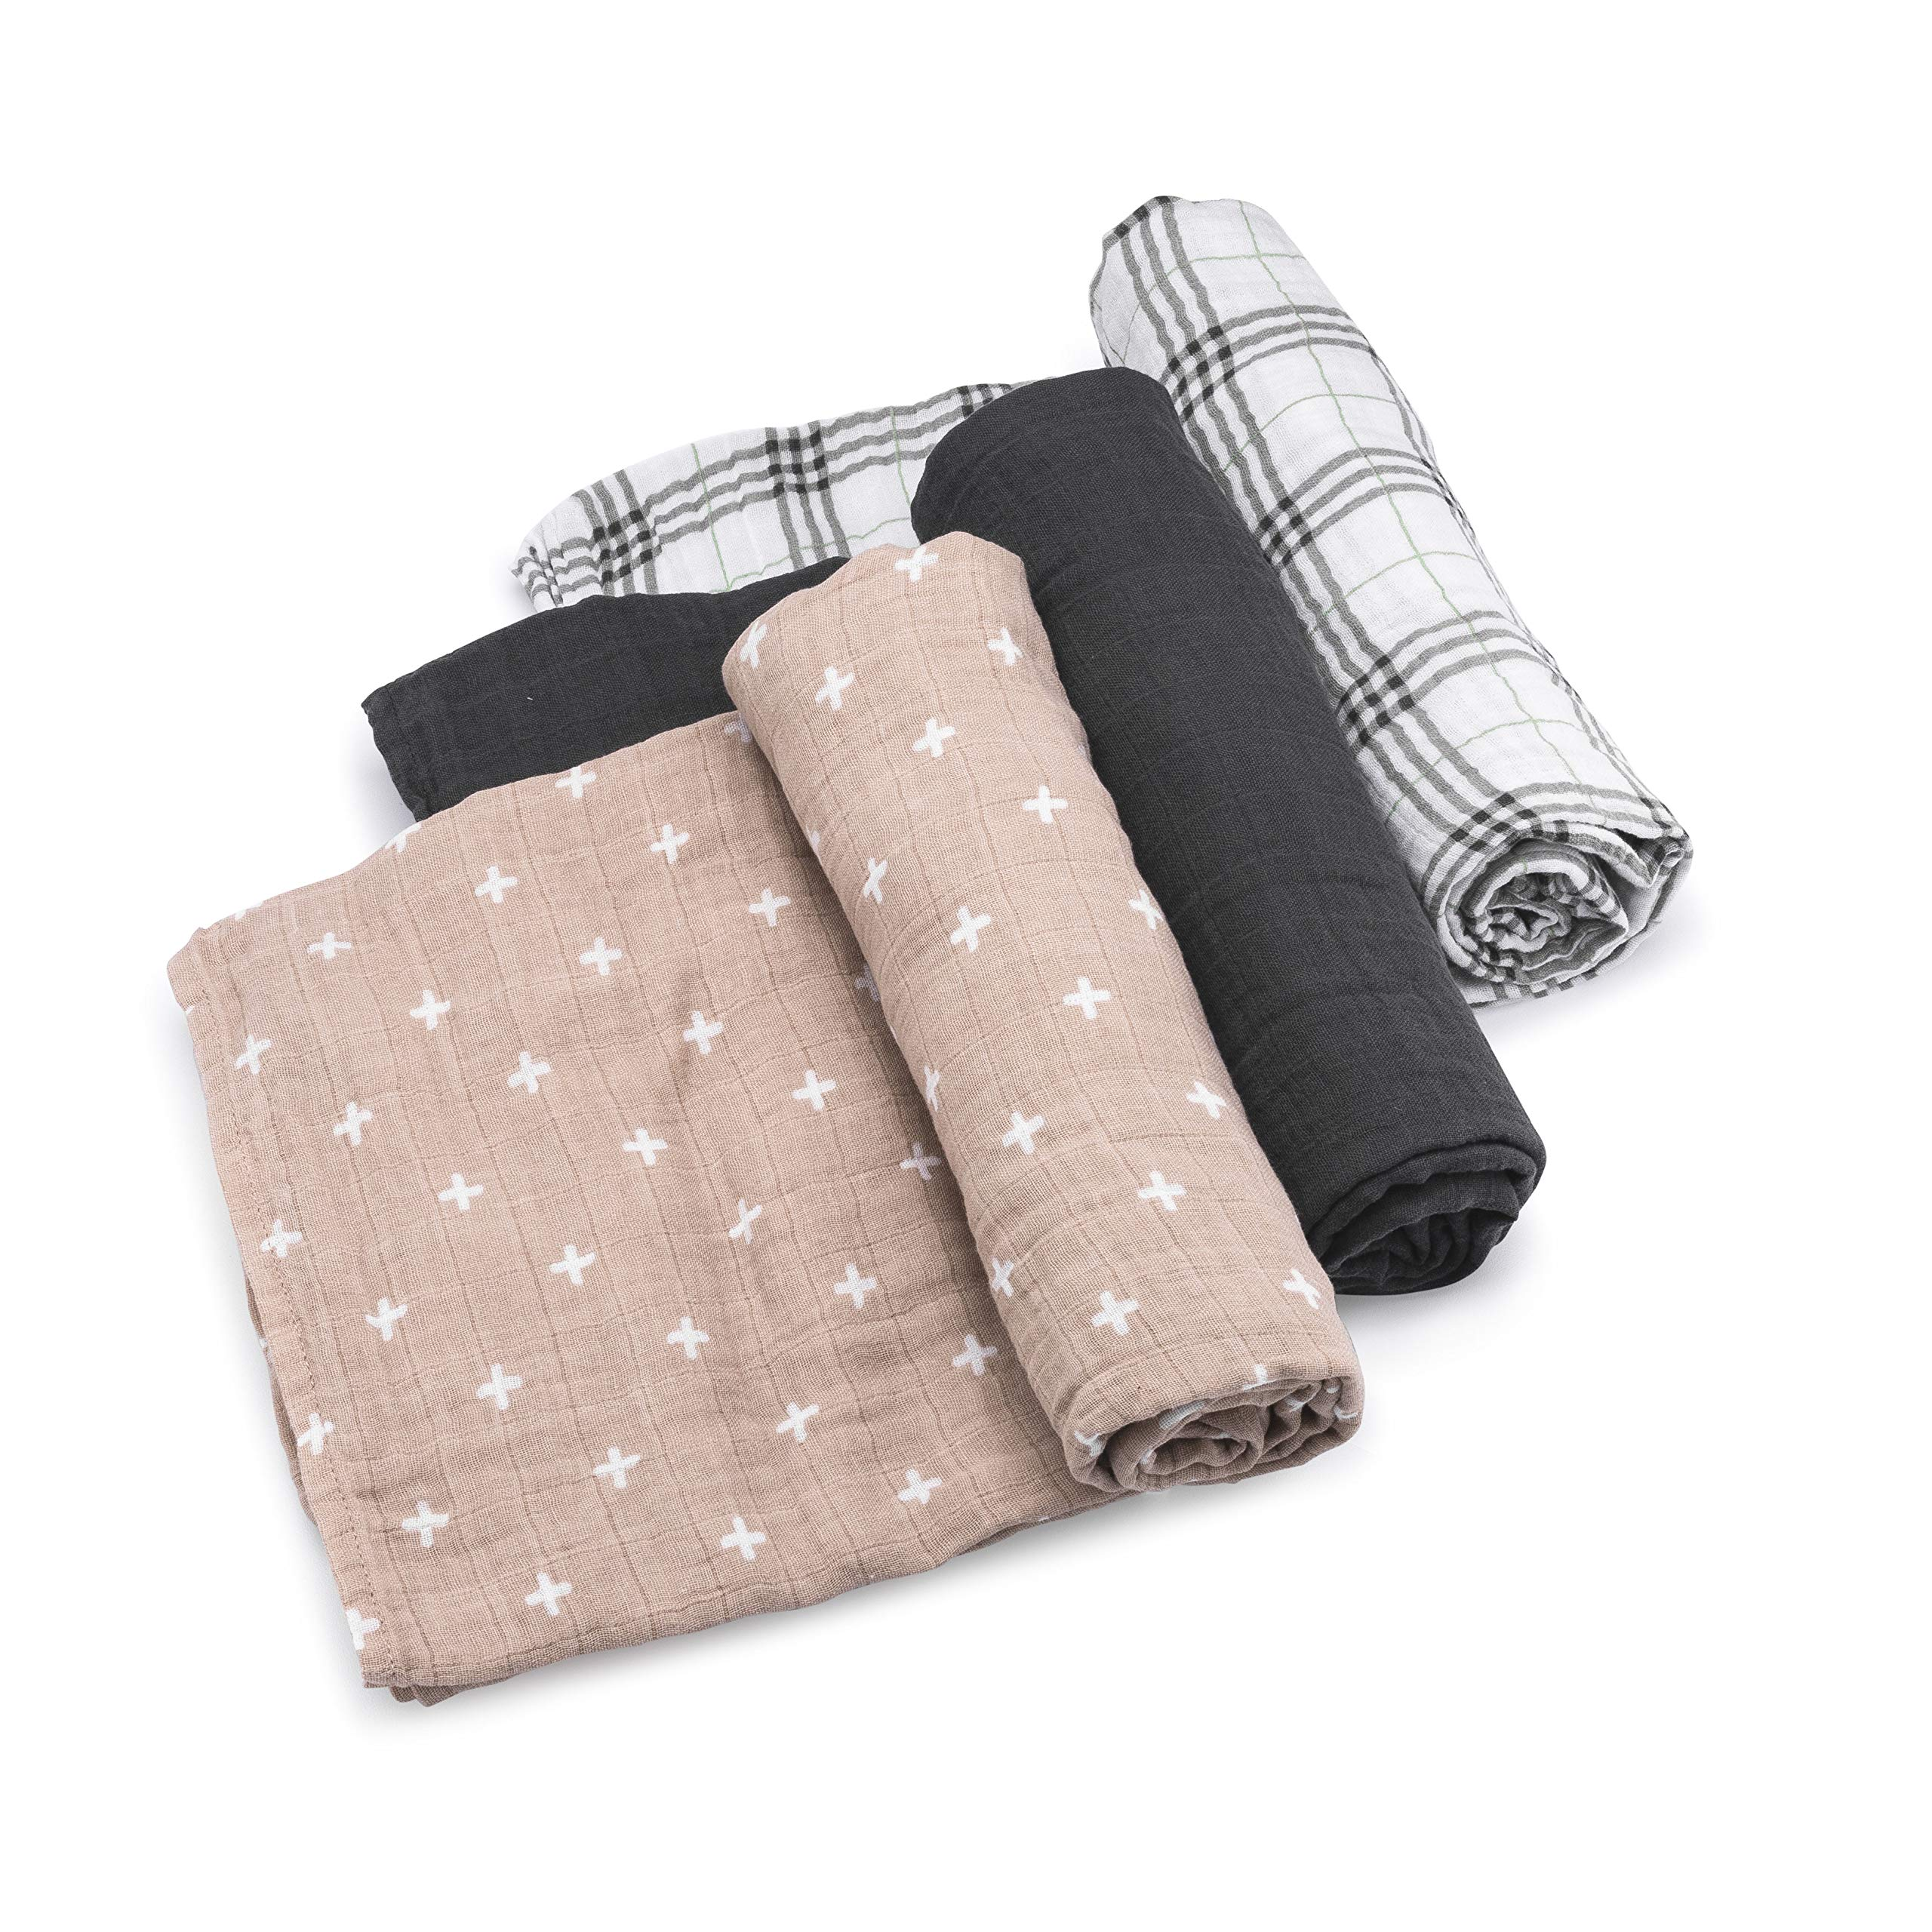 Parker Baby Swaddle Blankets - 3 Pack of 100% Cotton Muslin Swaddle Blankets for Baby Boys and Girls - Unisex/Gender Neutral -''Classics Set''